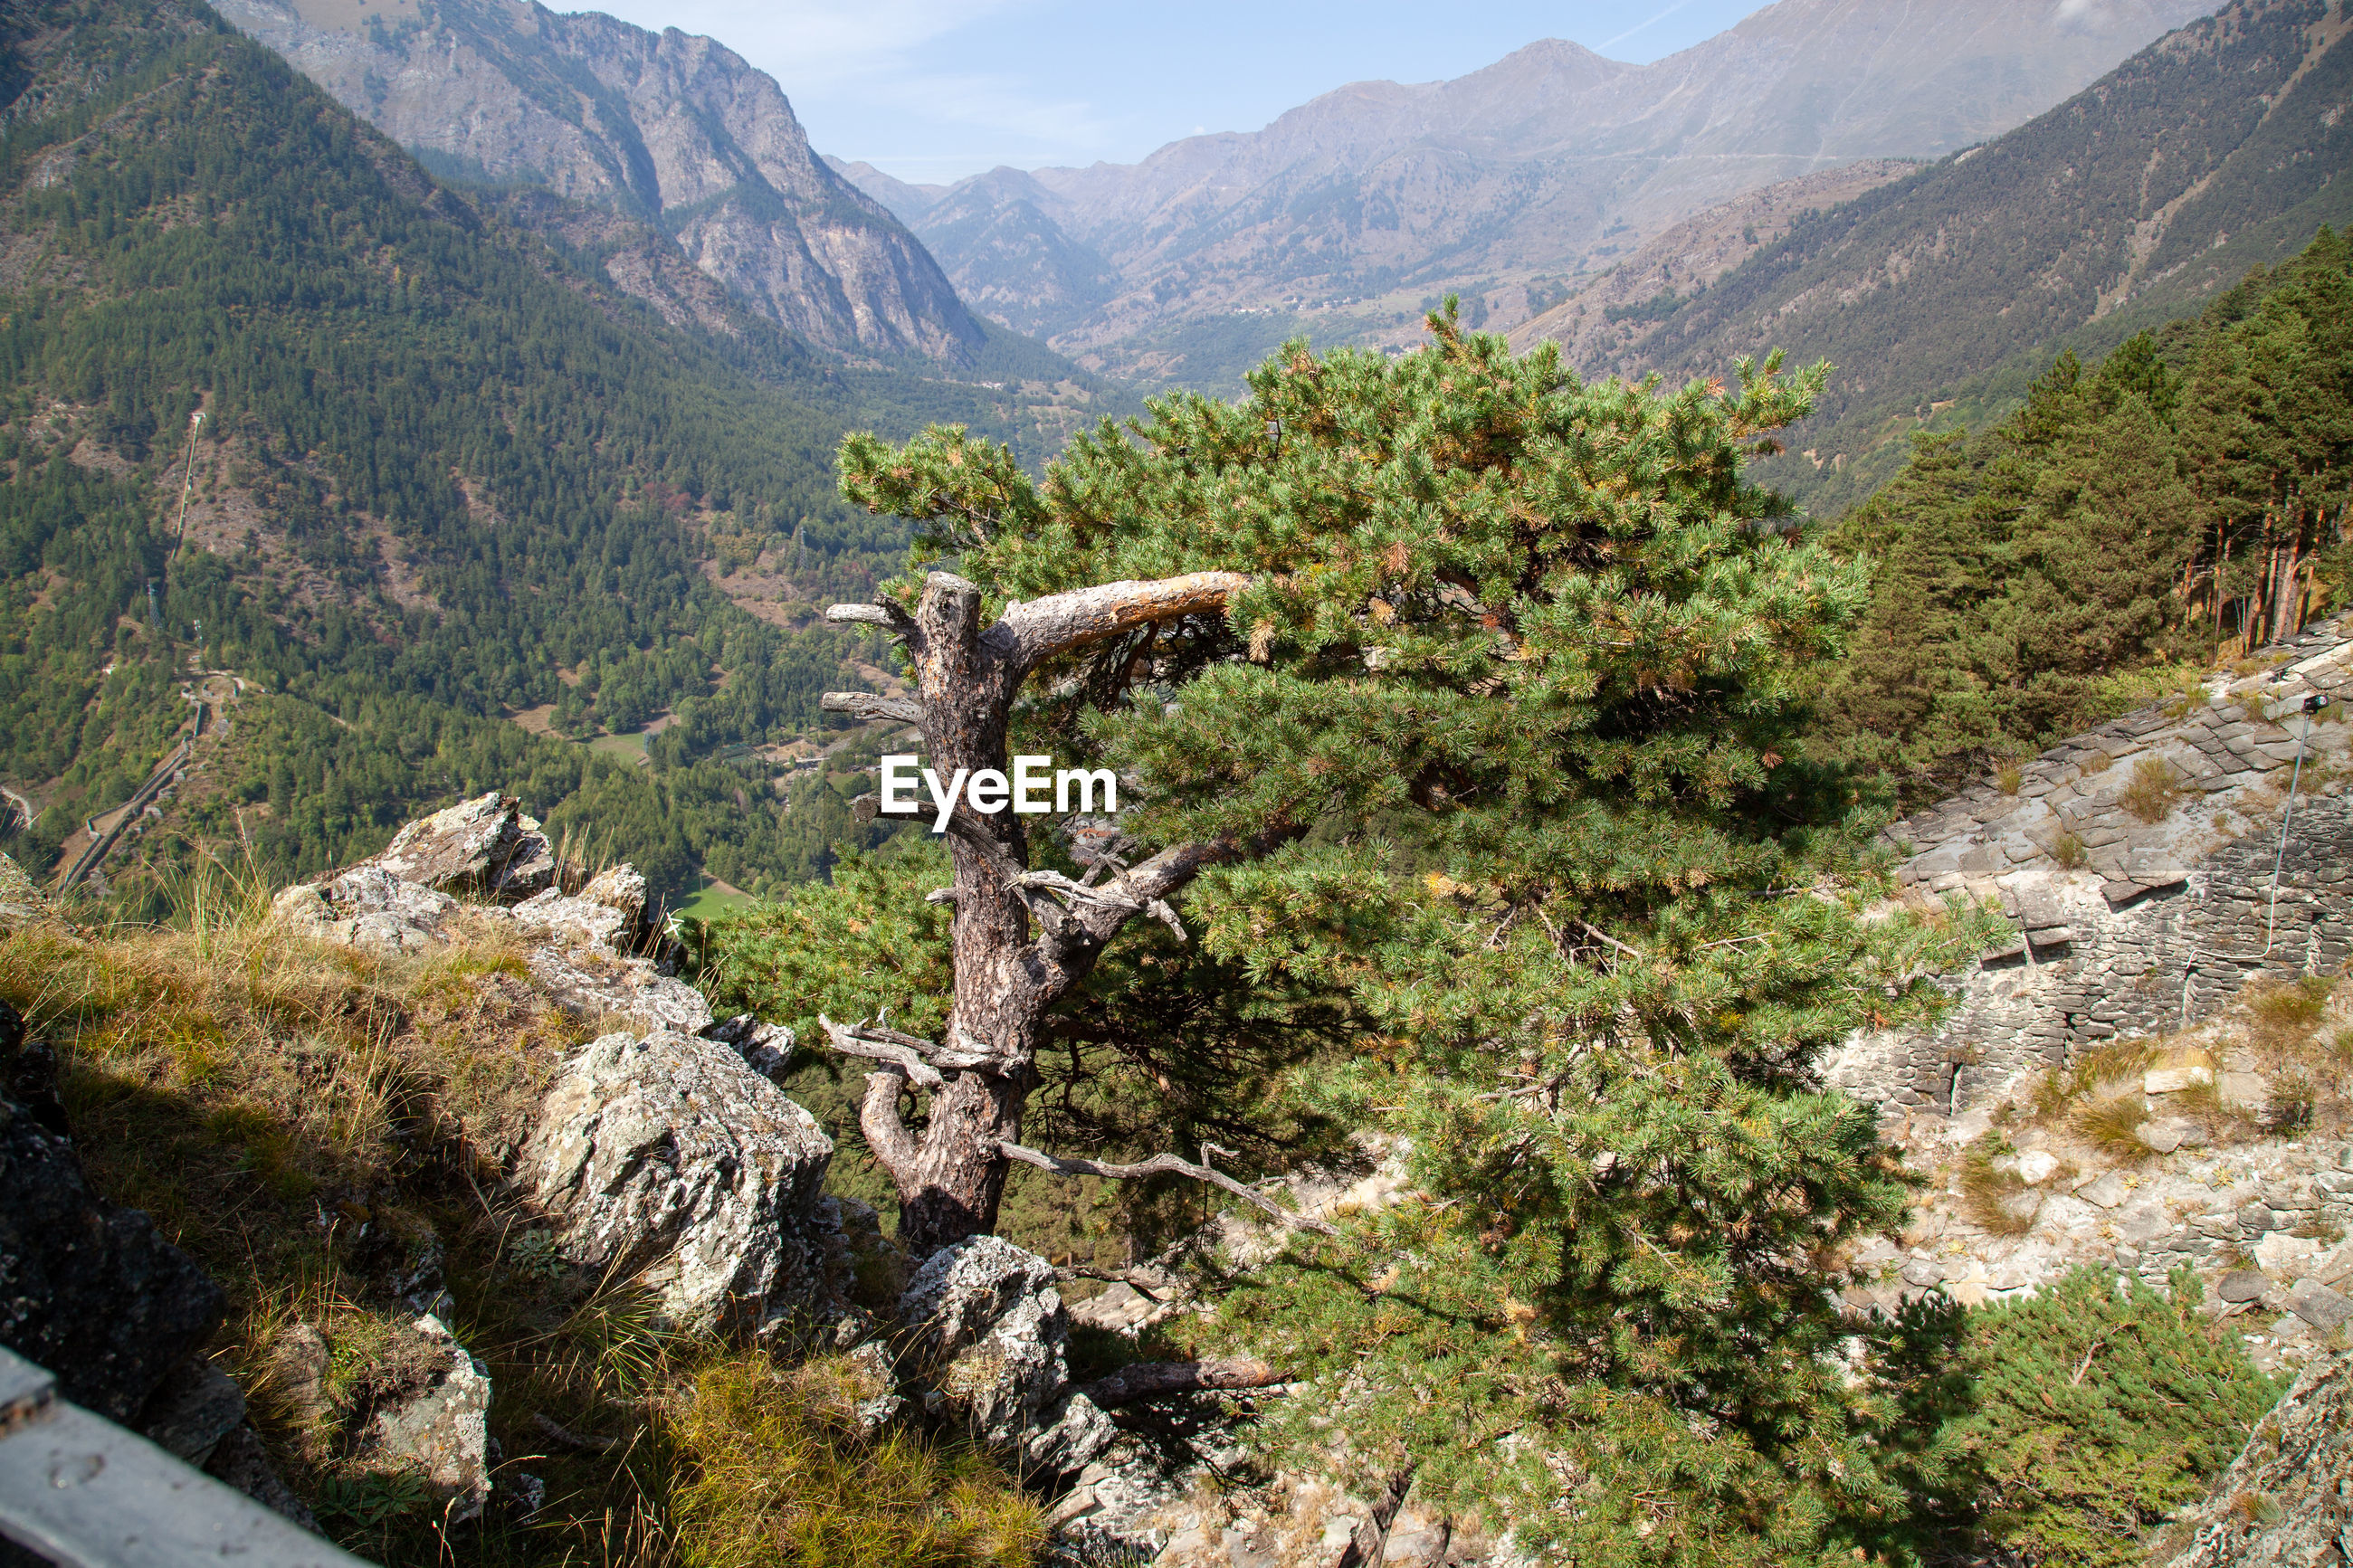 Scenic view of landscape and mountains